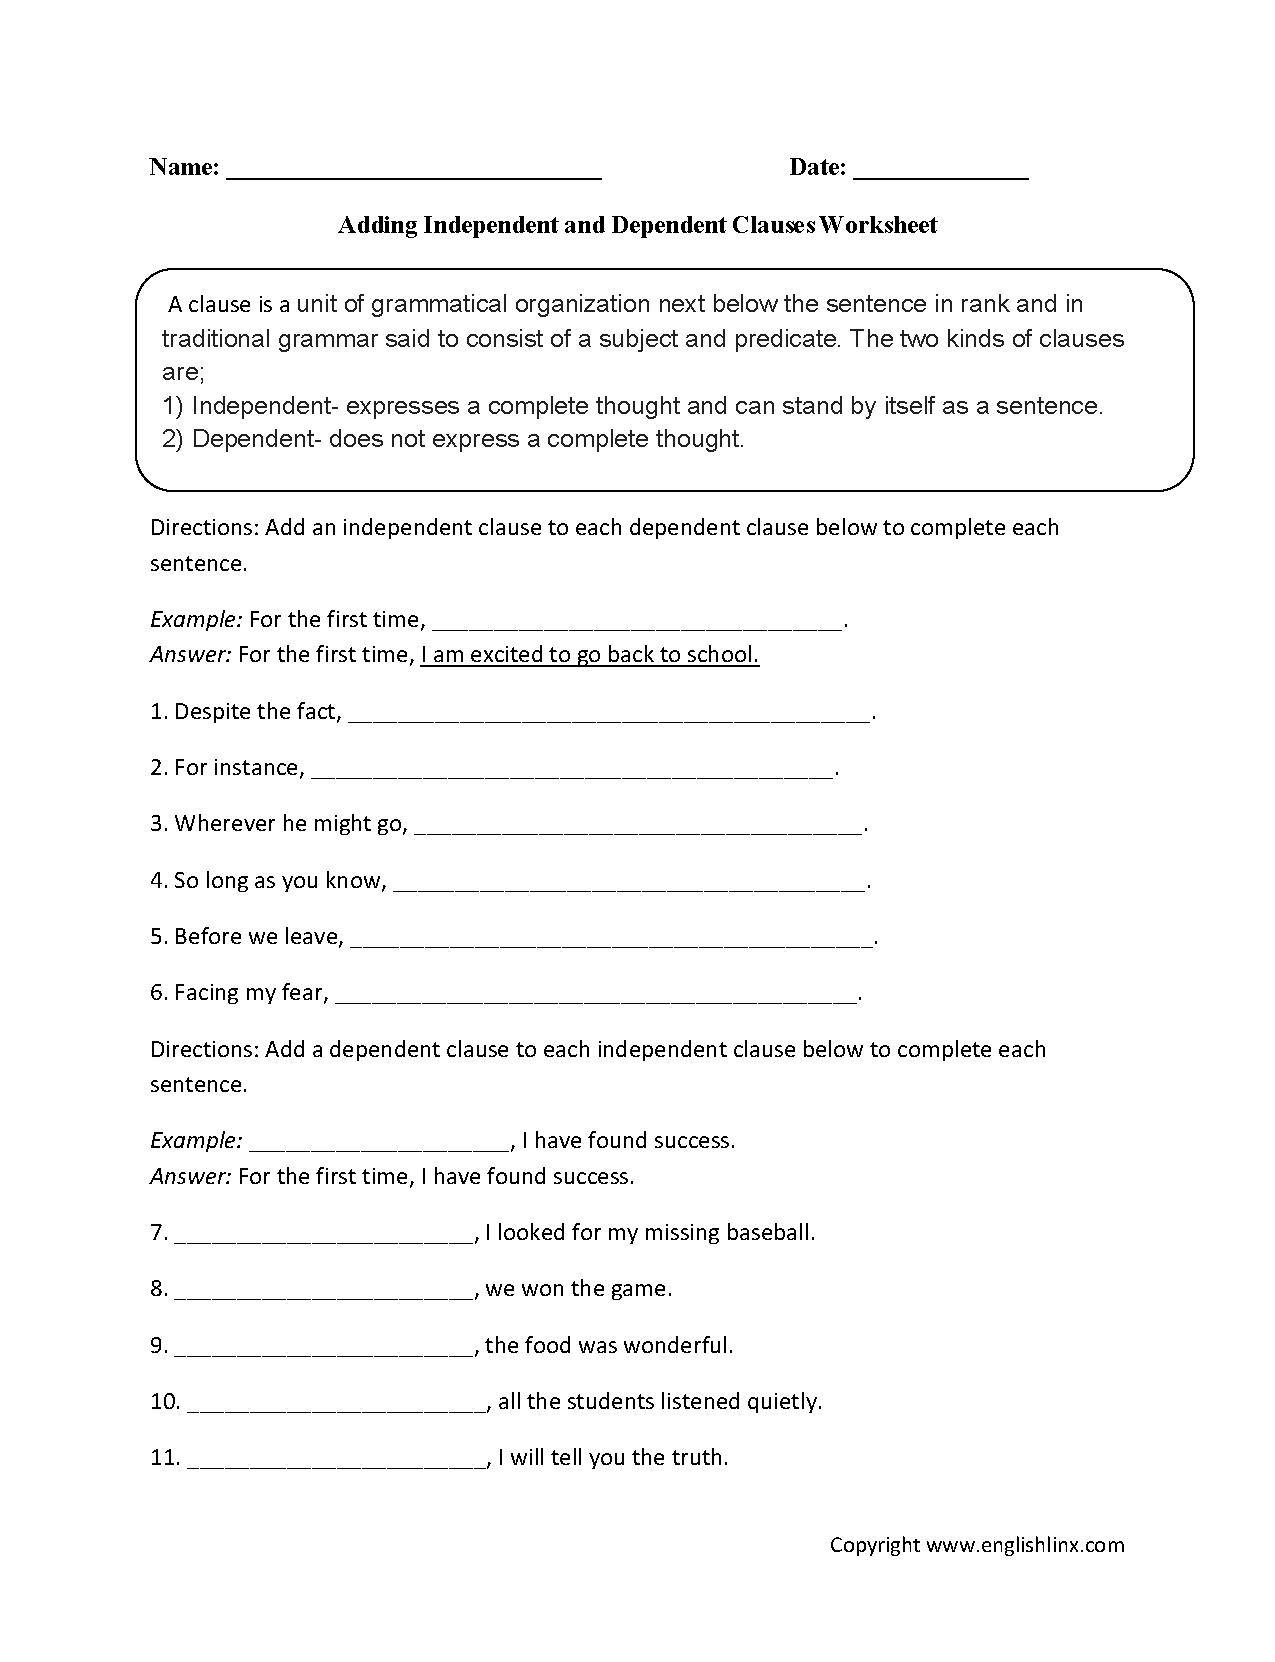 worksheet Clauses And Phrases Worksheets adding dependent and independent clauses worksheet great english worksheet